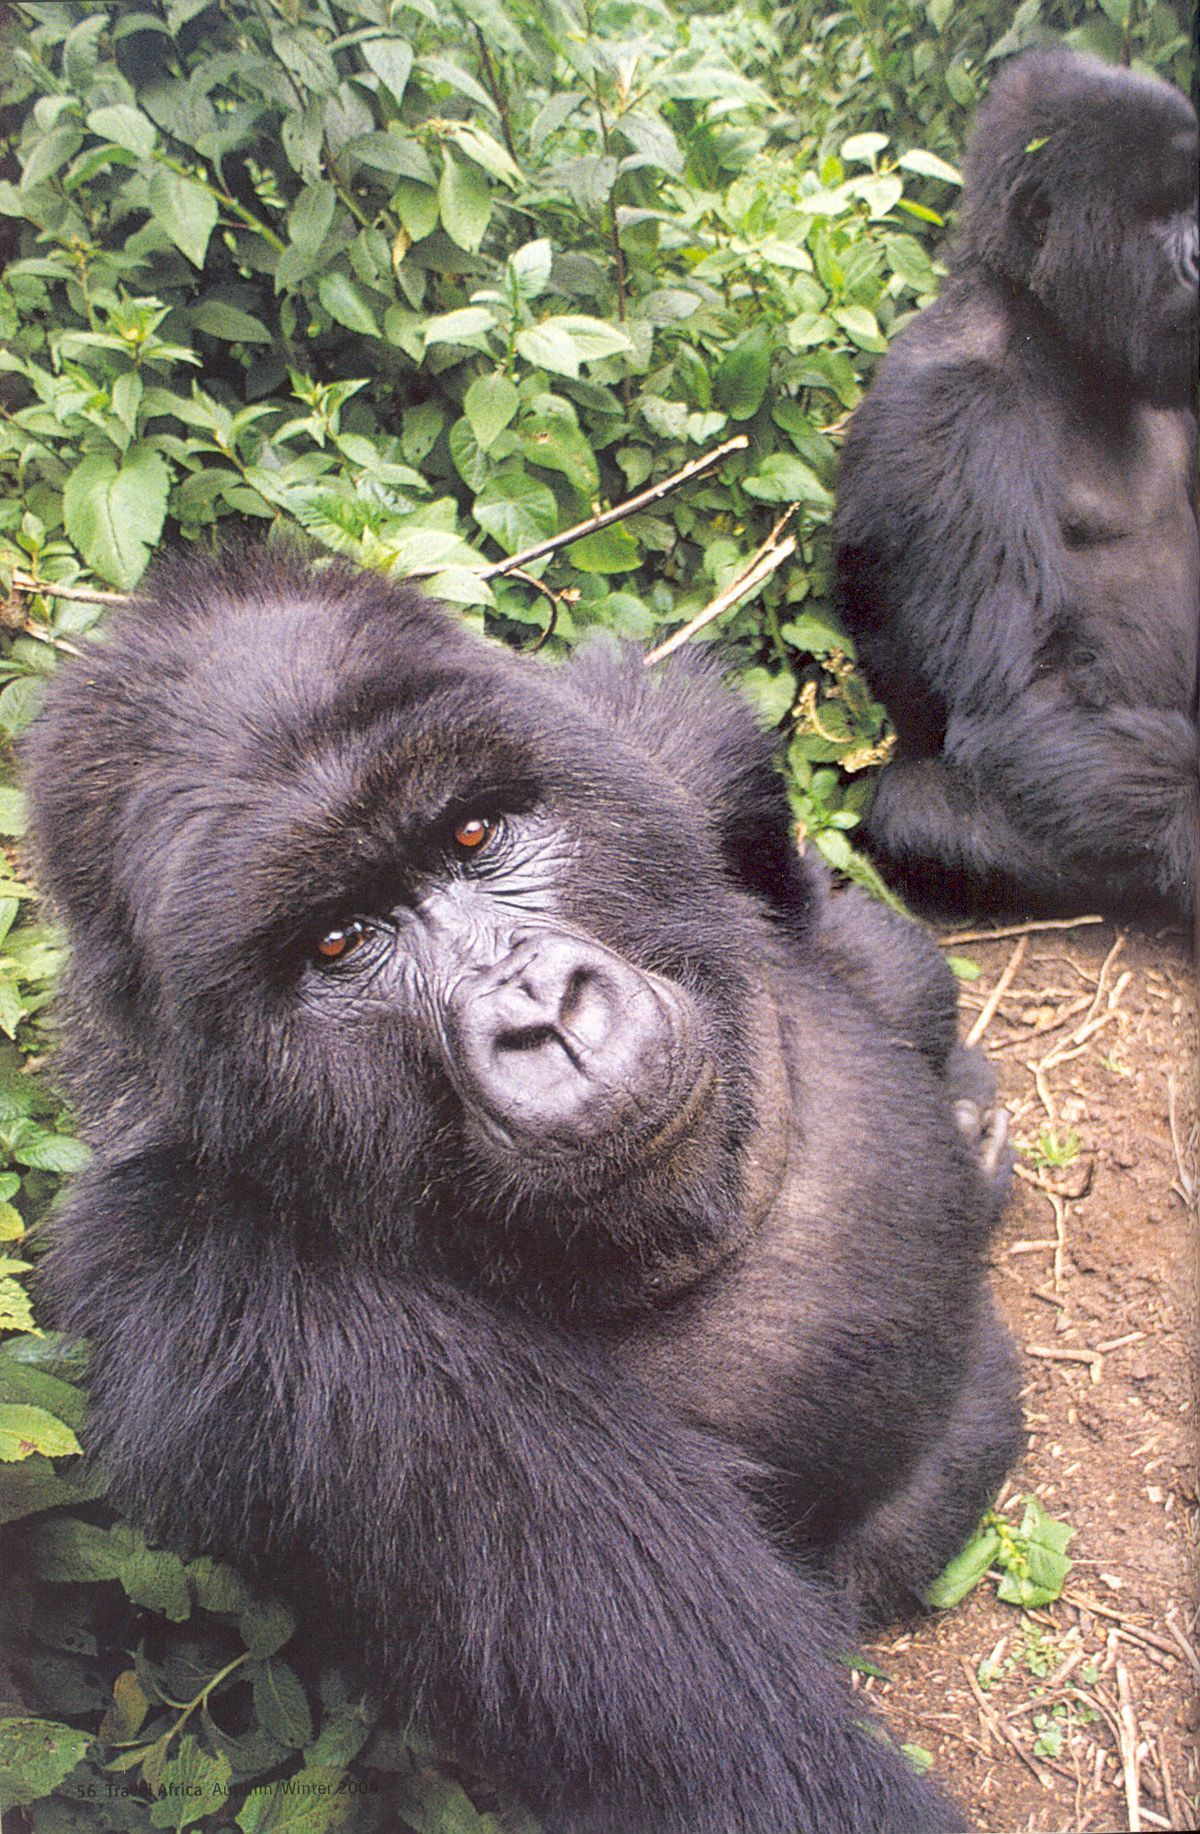 #Uganda A gorilla taking a selfie with our camera